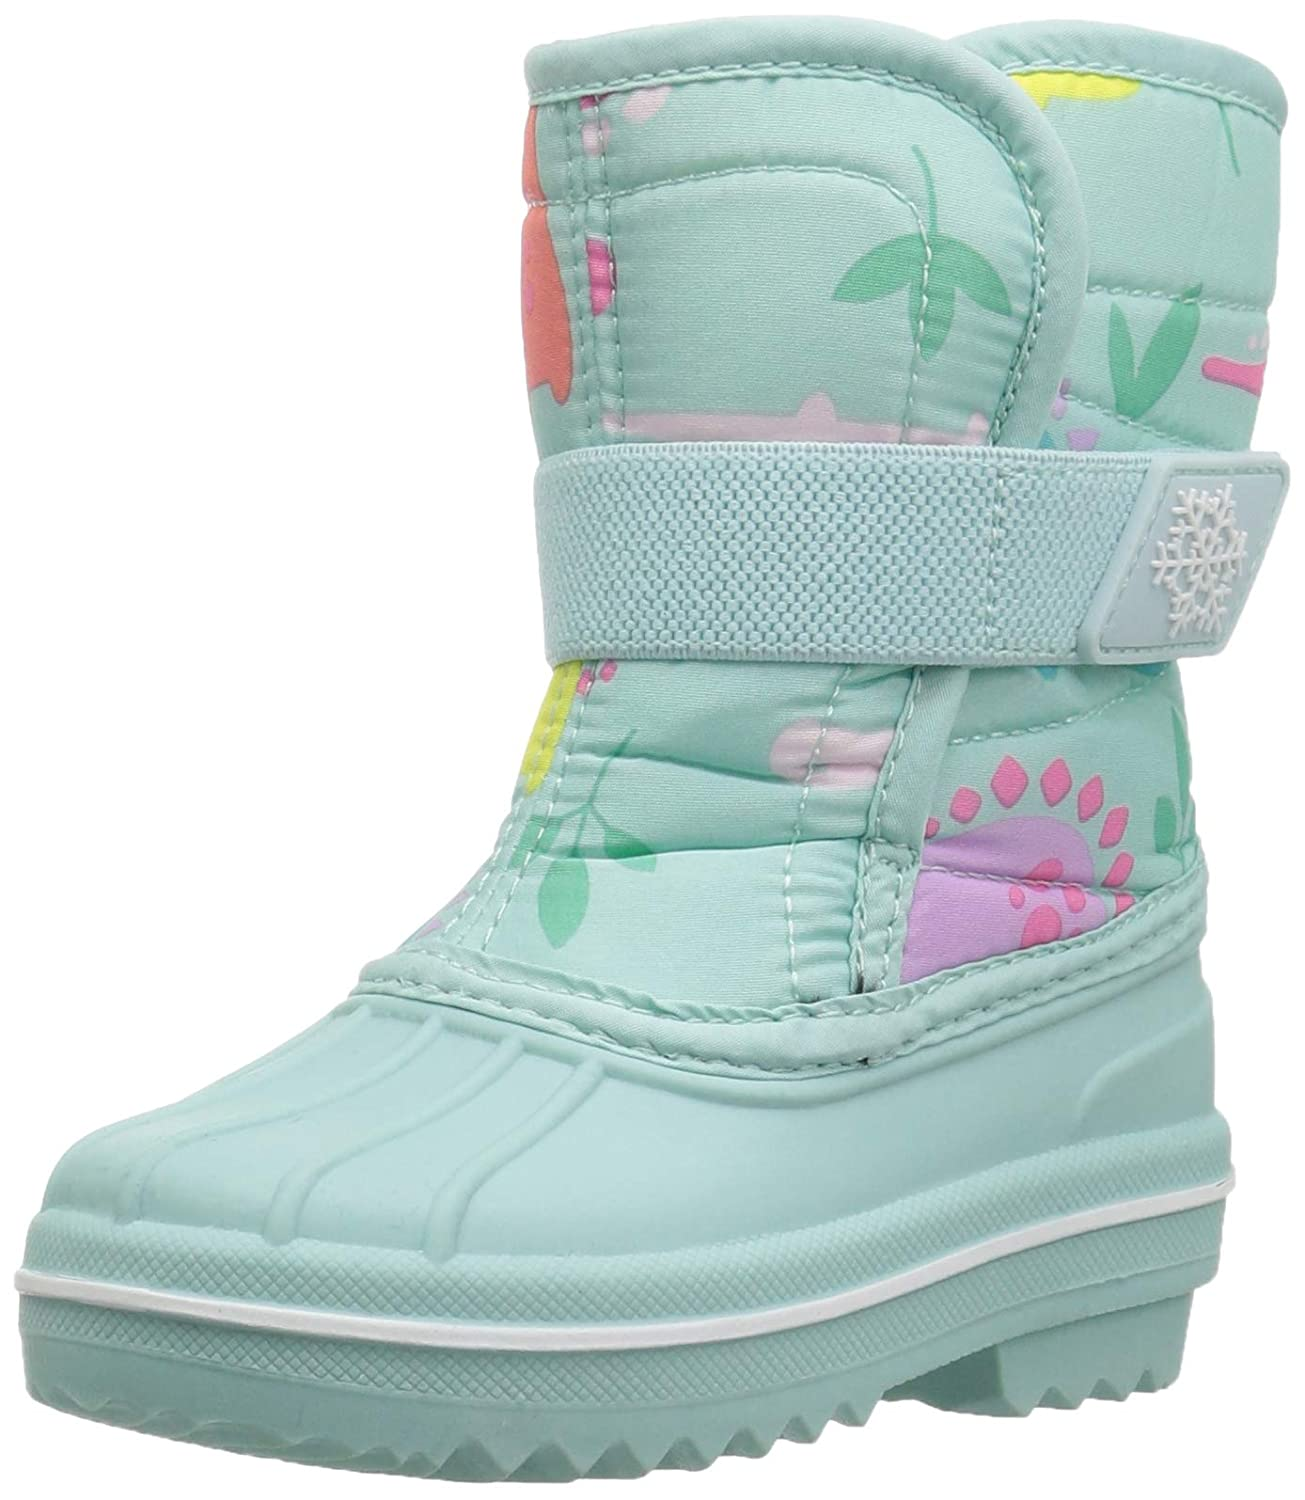 The Children's Place Kids Snow Boot The Children's Place